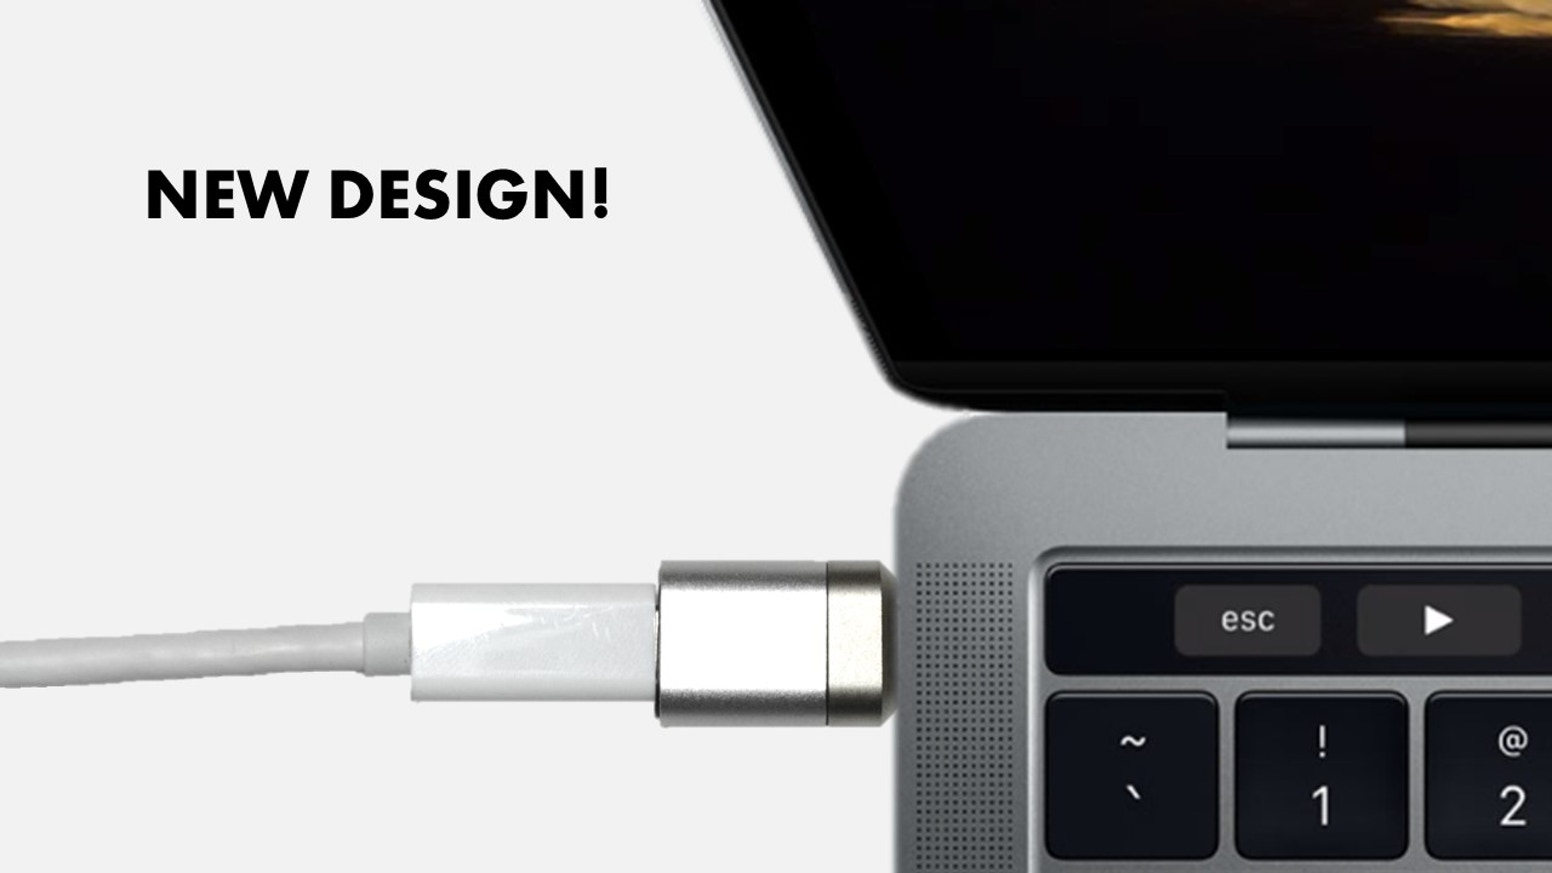 The Only MagSafe style USB-C Adapter with Charging + Data + Video. For all USB-C Notebooks, Tablets and Smartphones + 2016 Macbook Pro.